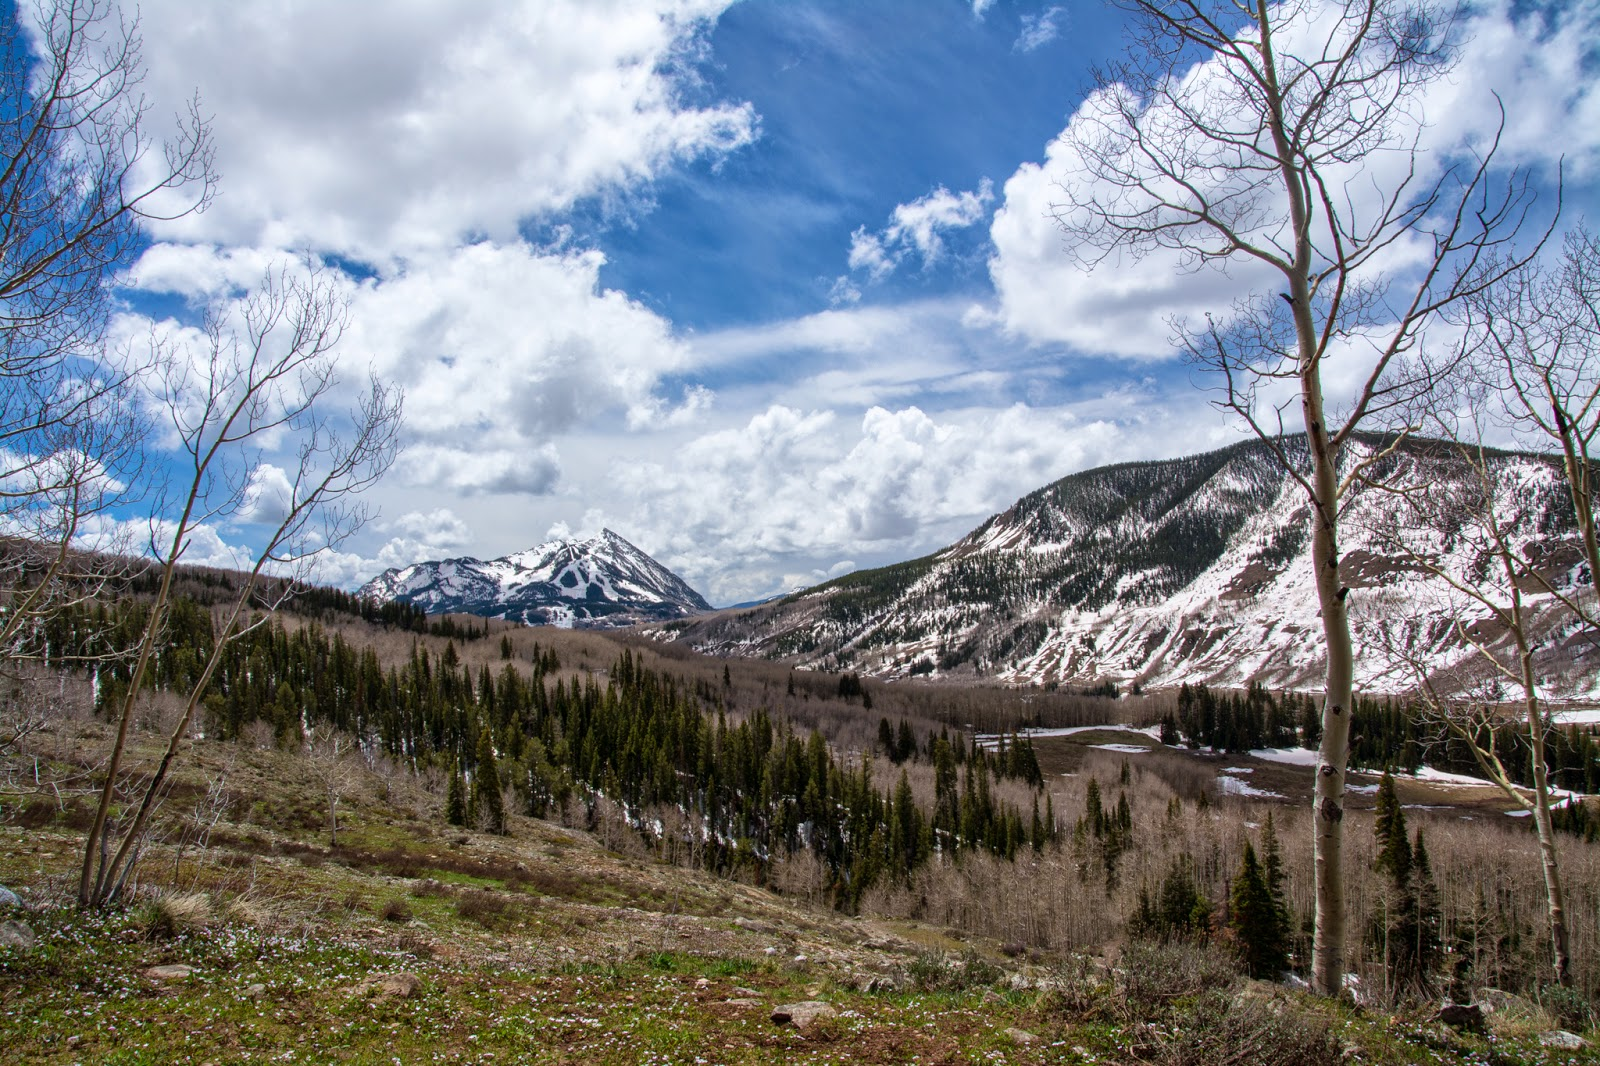 Mt. Crested Butte, Snodgrass Mountain